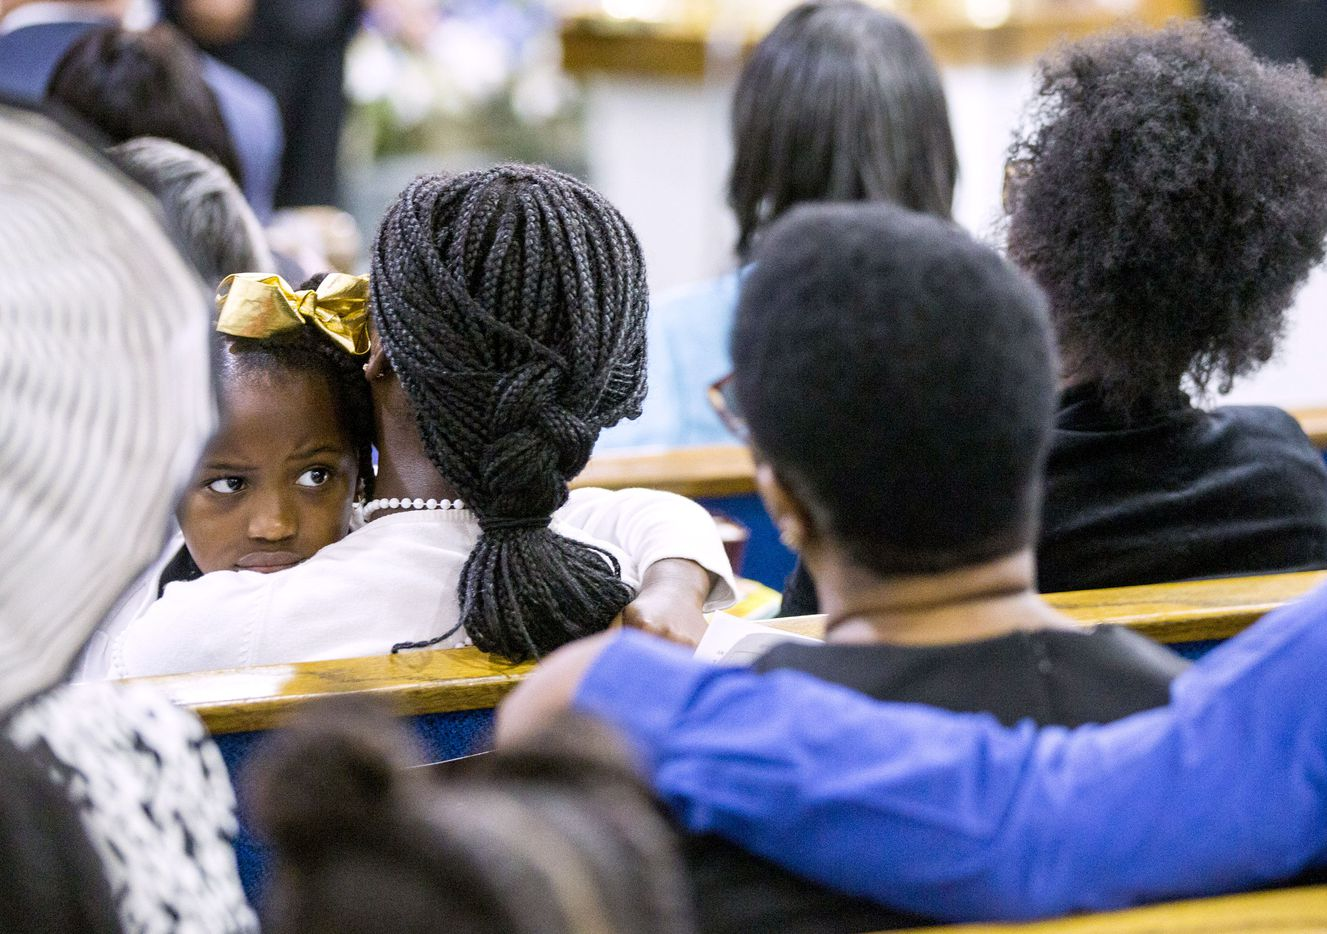 A young girl (far left) looks back at Allison Jean, (foreground center, back to camera) mother of Botham Shem Jean, during a prayer service for Botham Shem Jean at the Dallas West Church of Christ on Sunday, September 9, 2018 in Dallas.